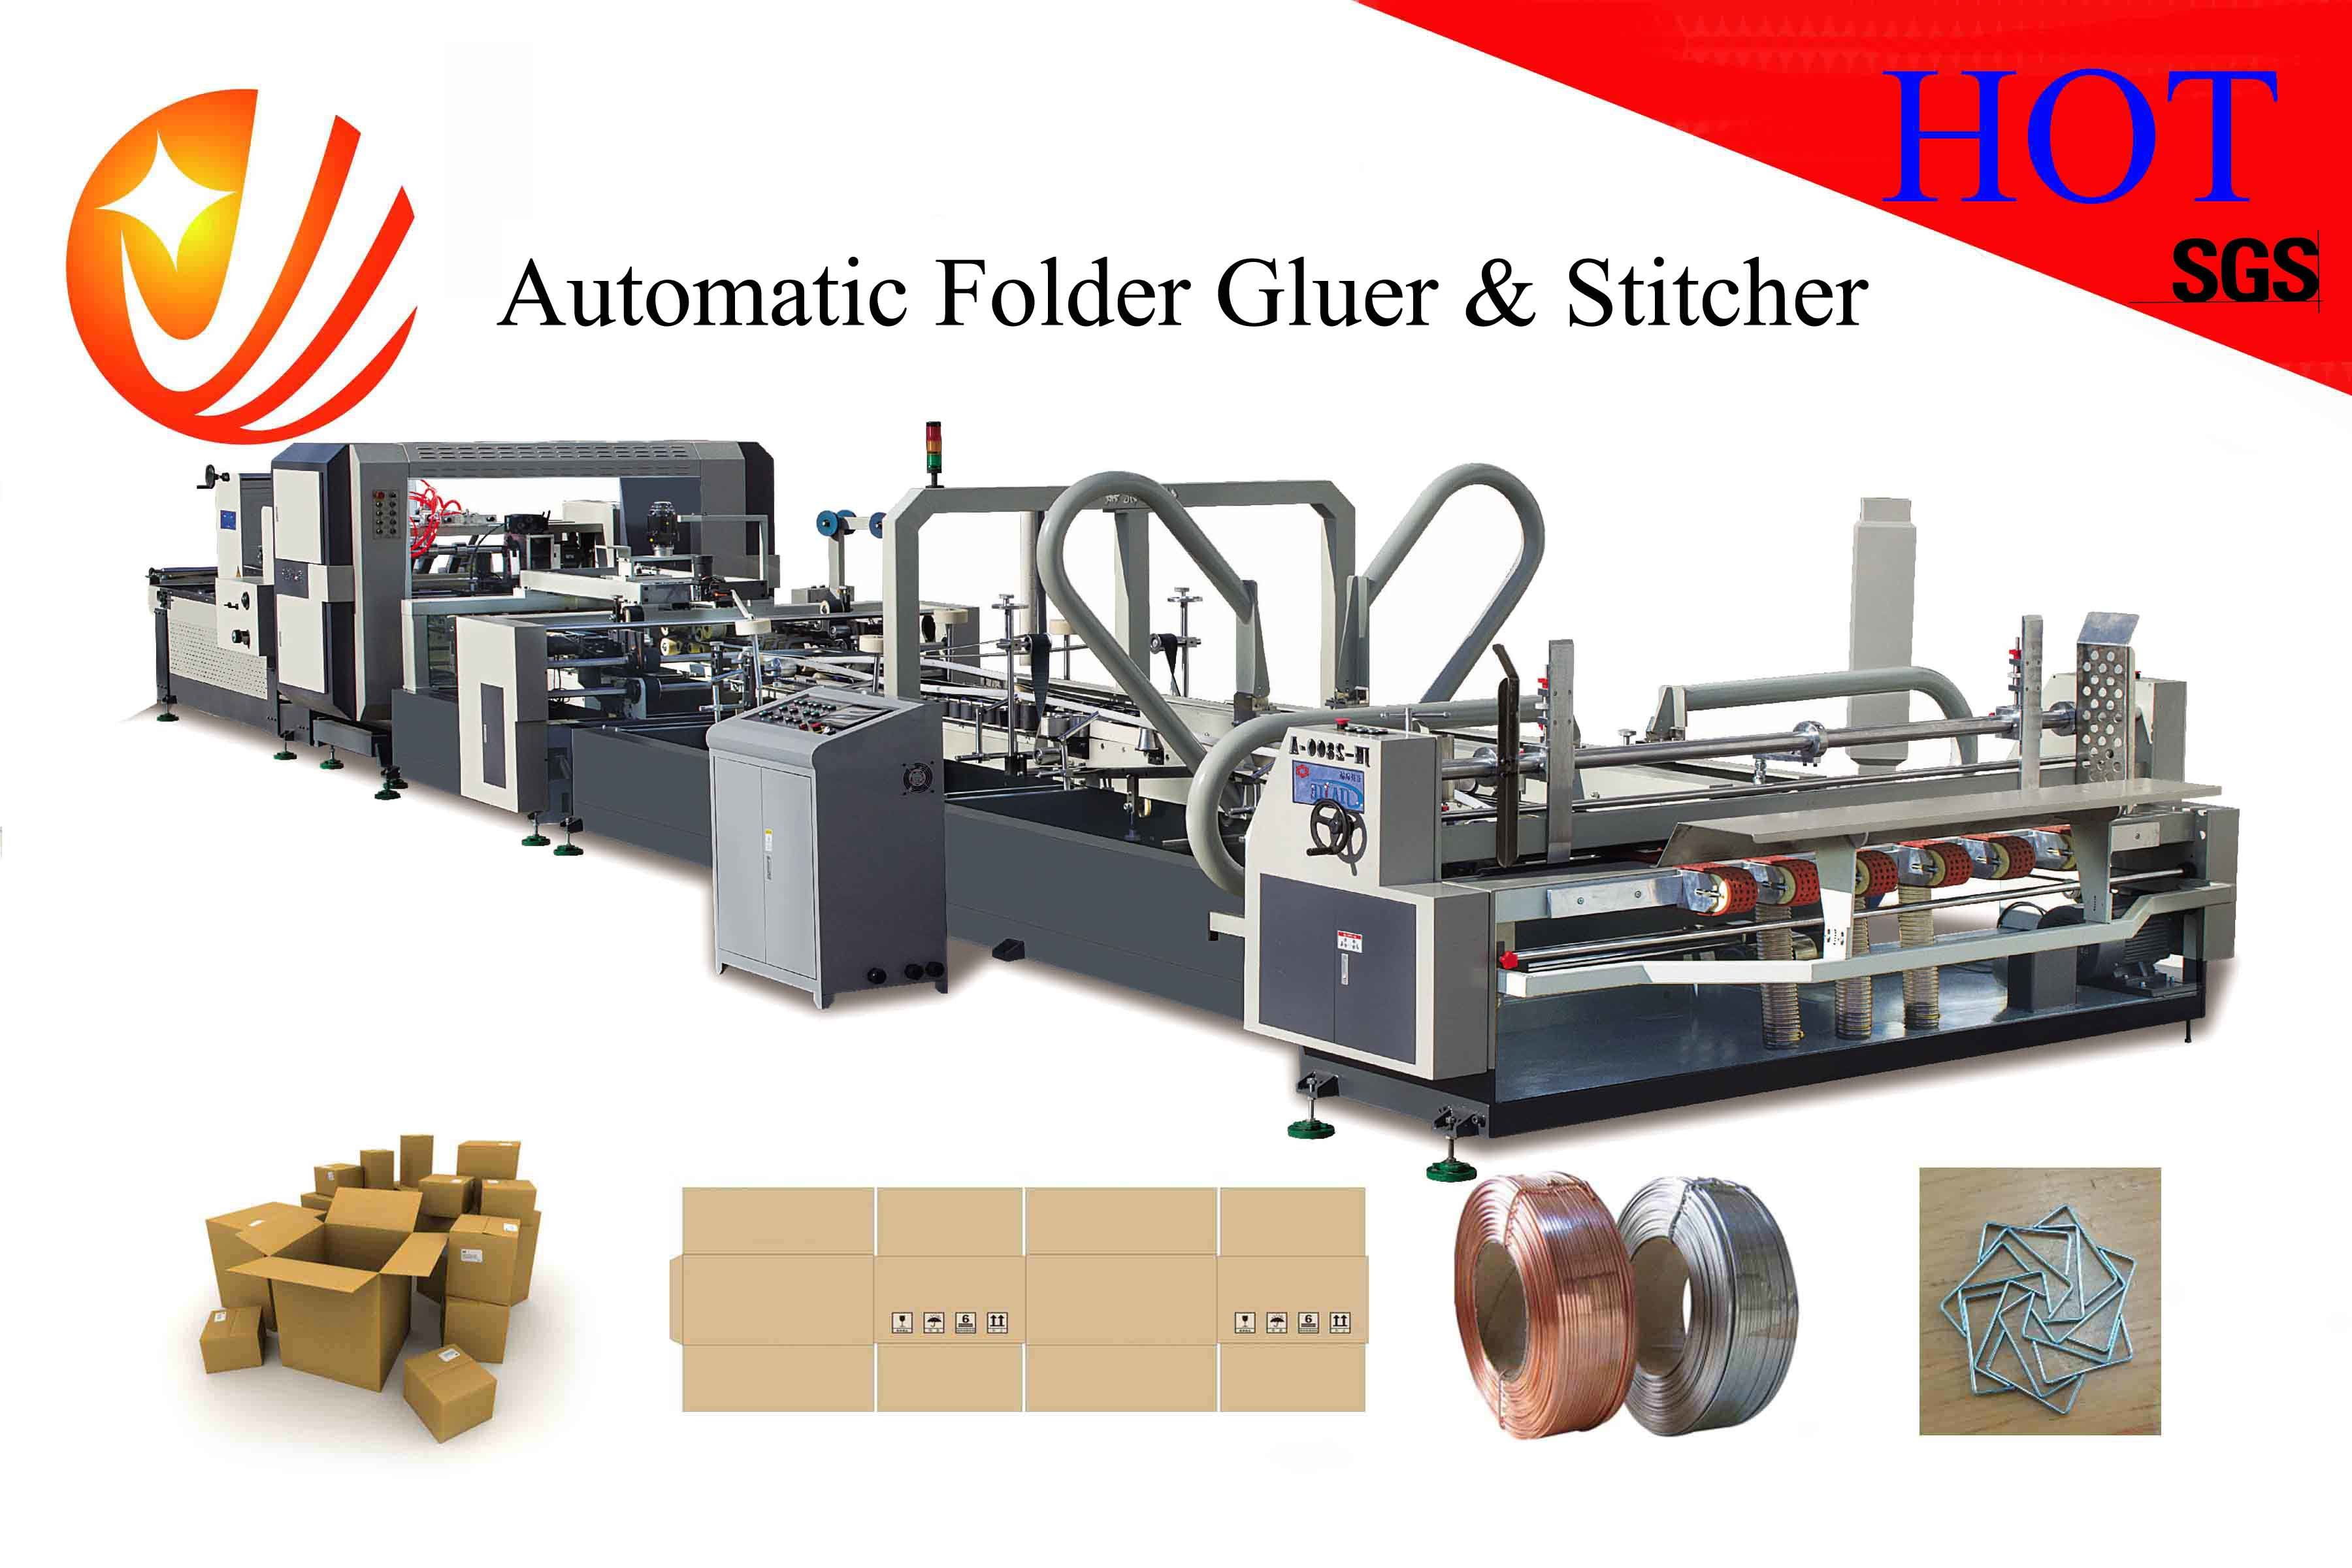 Automatic-Stitcher-and-Folder-Gluer